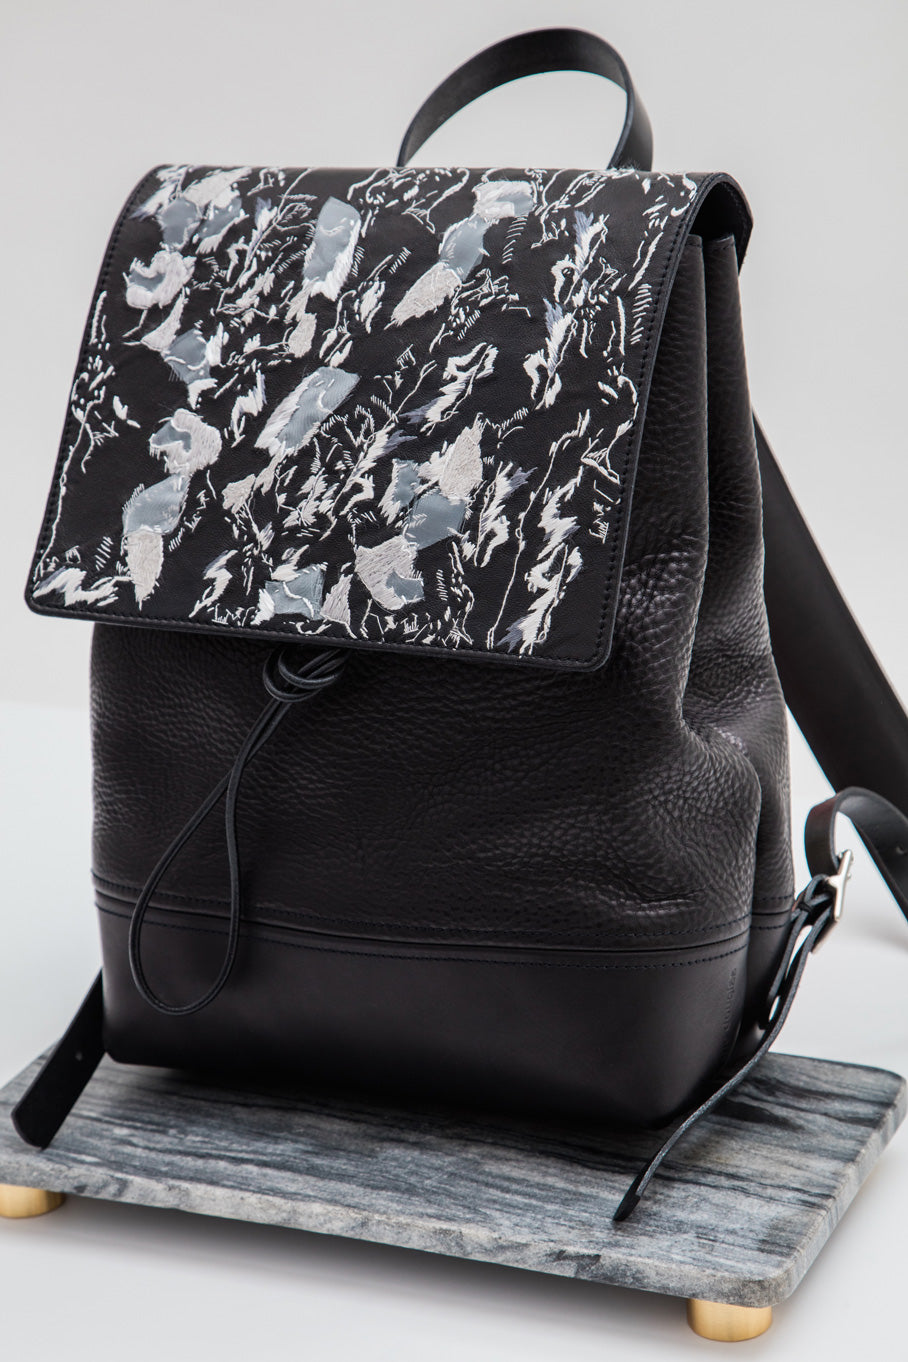 Alfie Douglas leather backpack hand and lock